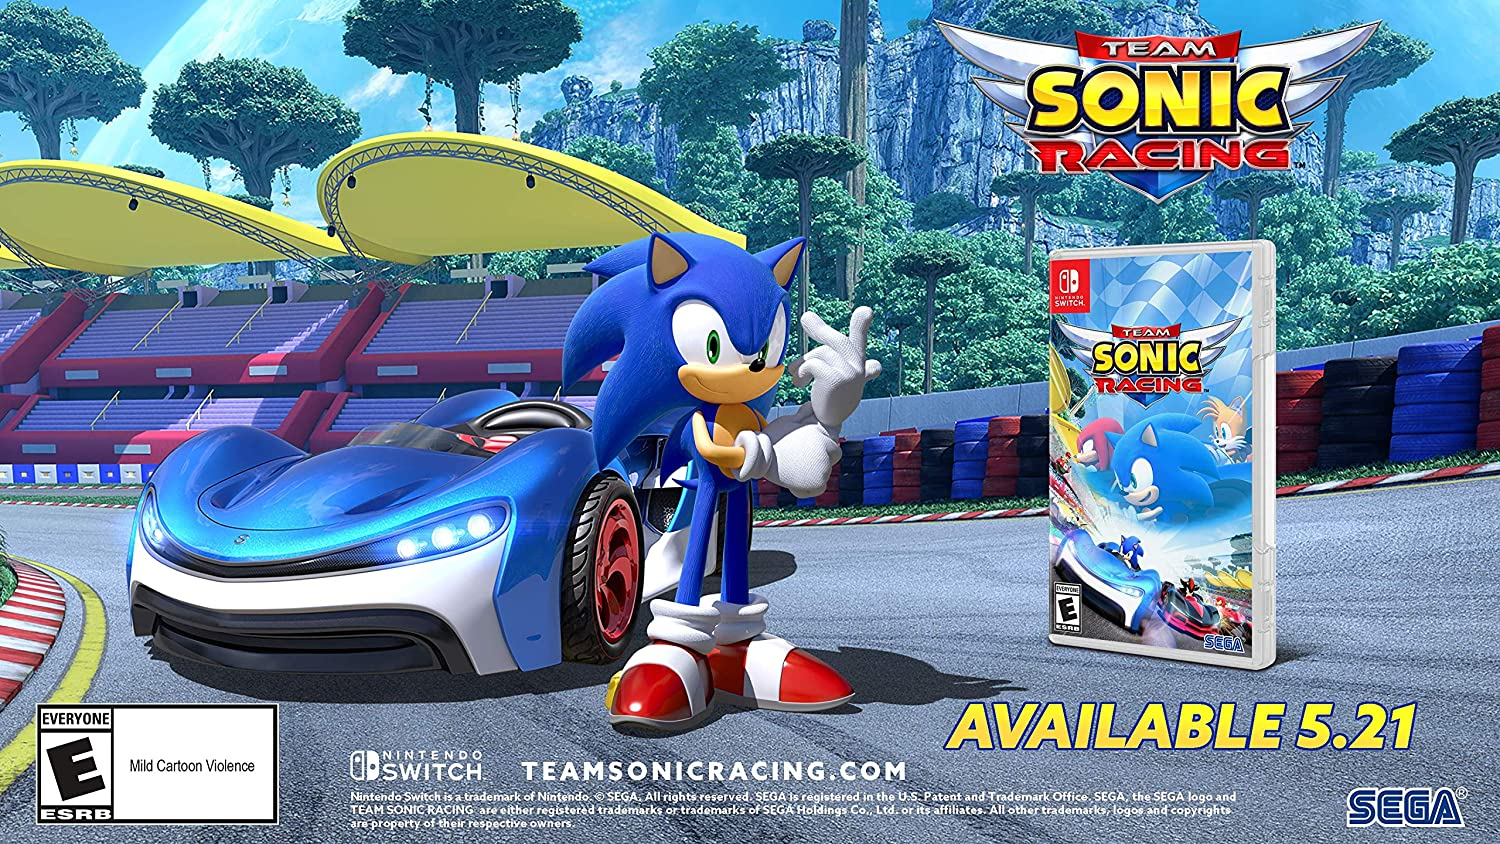 UK Daily Deals: Xbox Live Gold for 6 Months with 1000 Apex Legends Coins under £15, Team Sonic Racing from £14.99